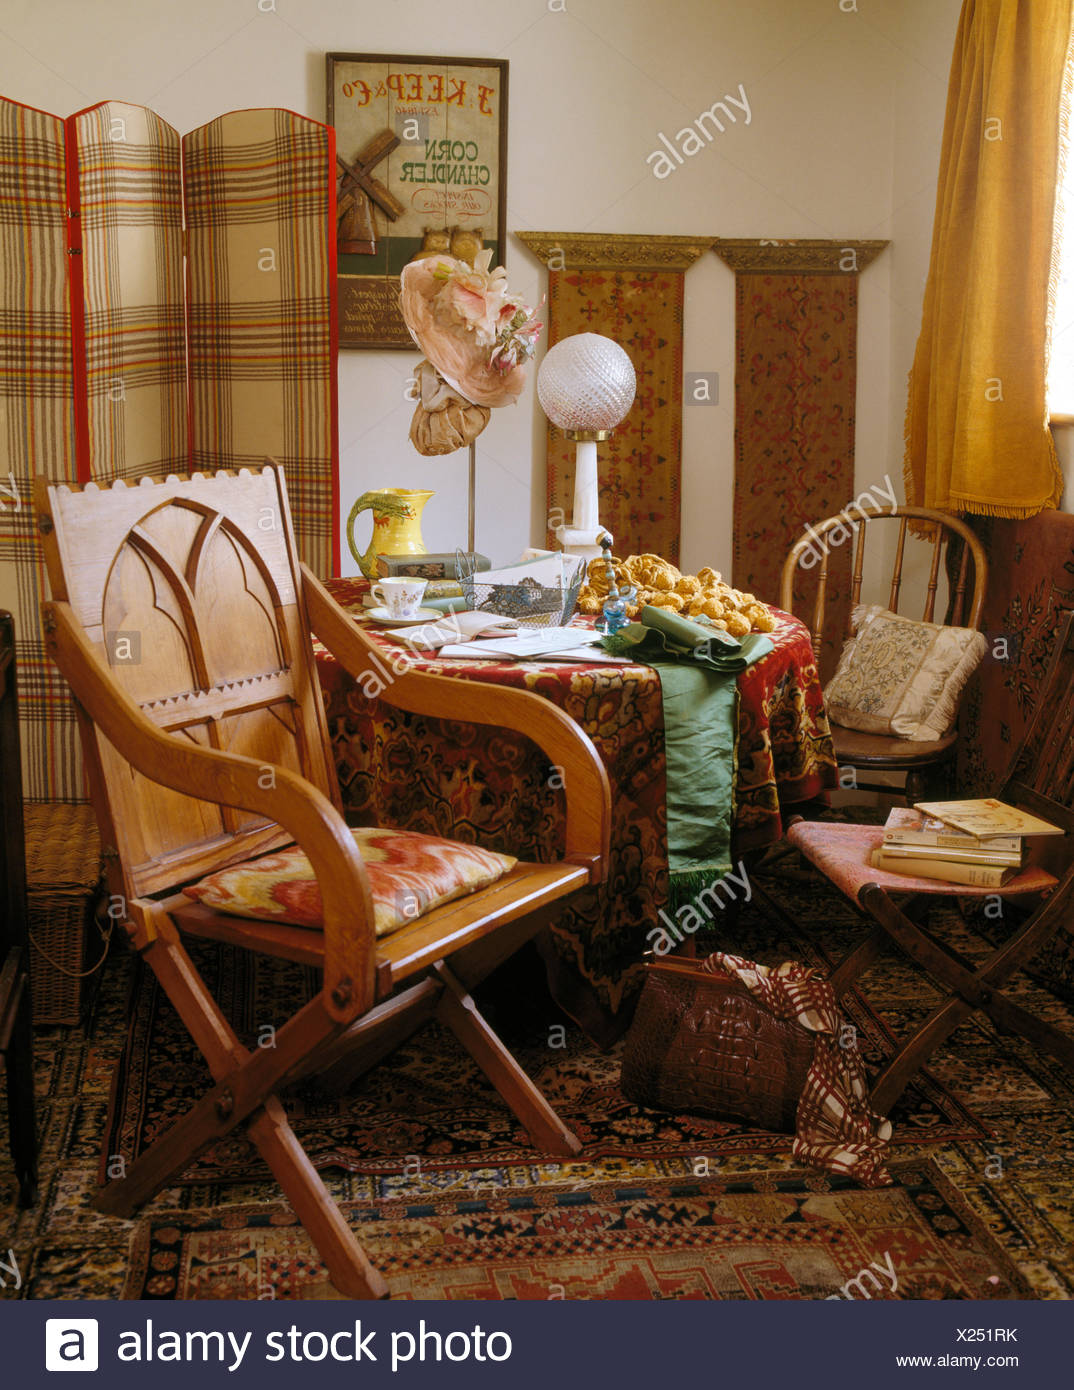 Antique chair and small table with richly patterned cloth in front of  screen in corner of dining room - Antique Chair And Small Table With Richly Patterned Cloth In Front